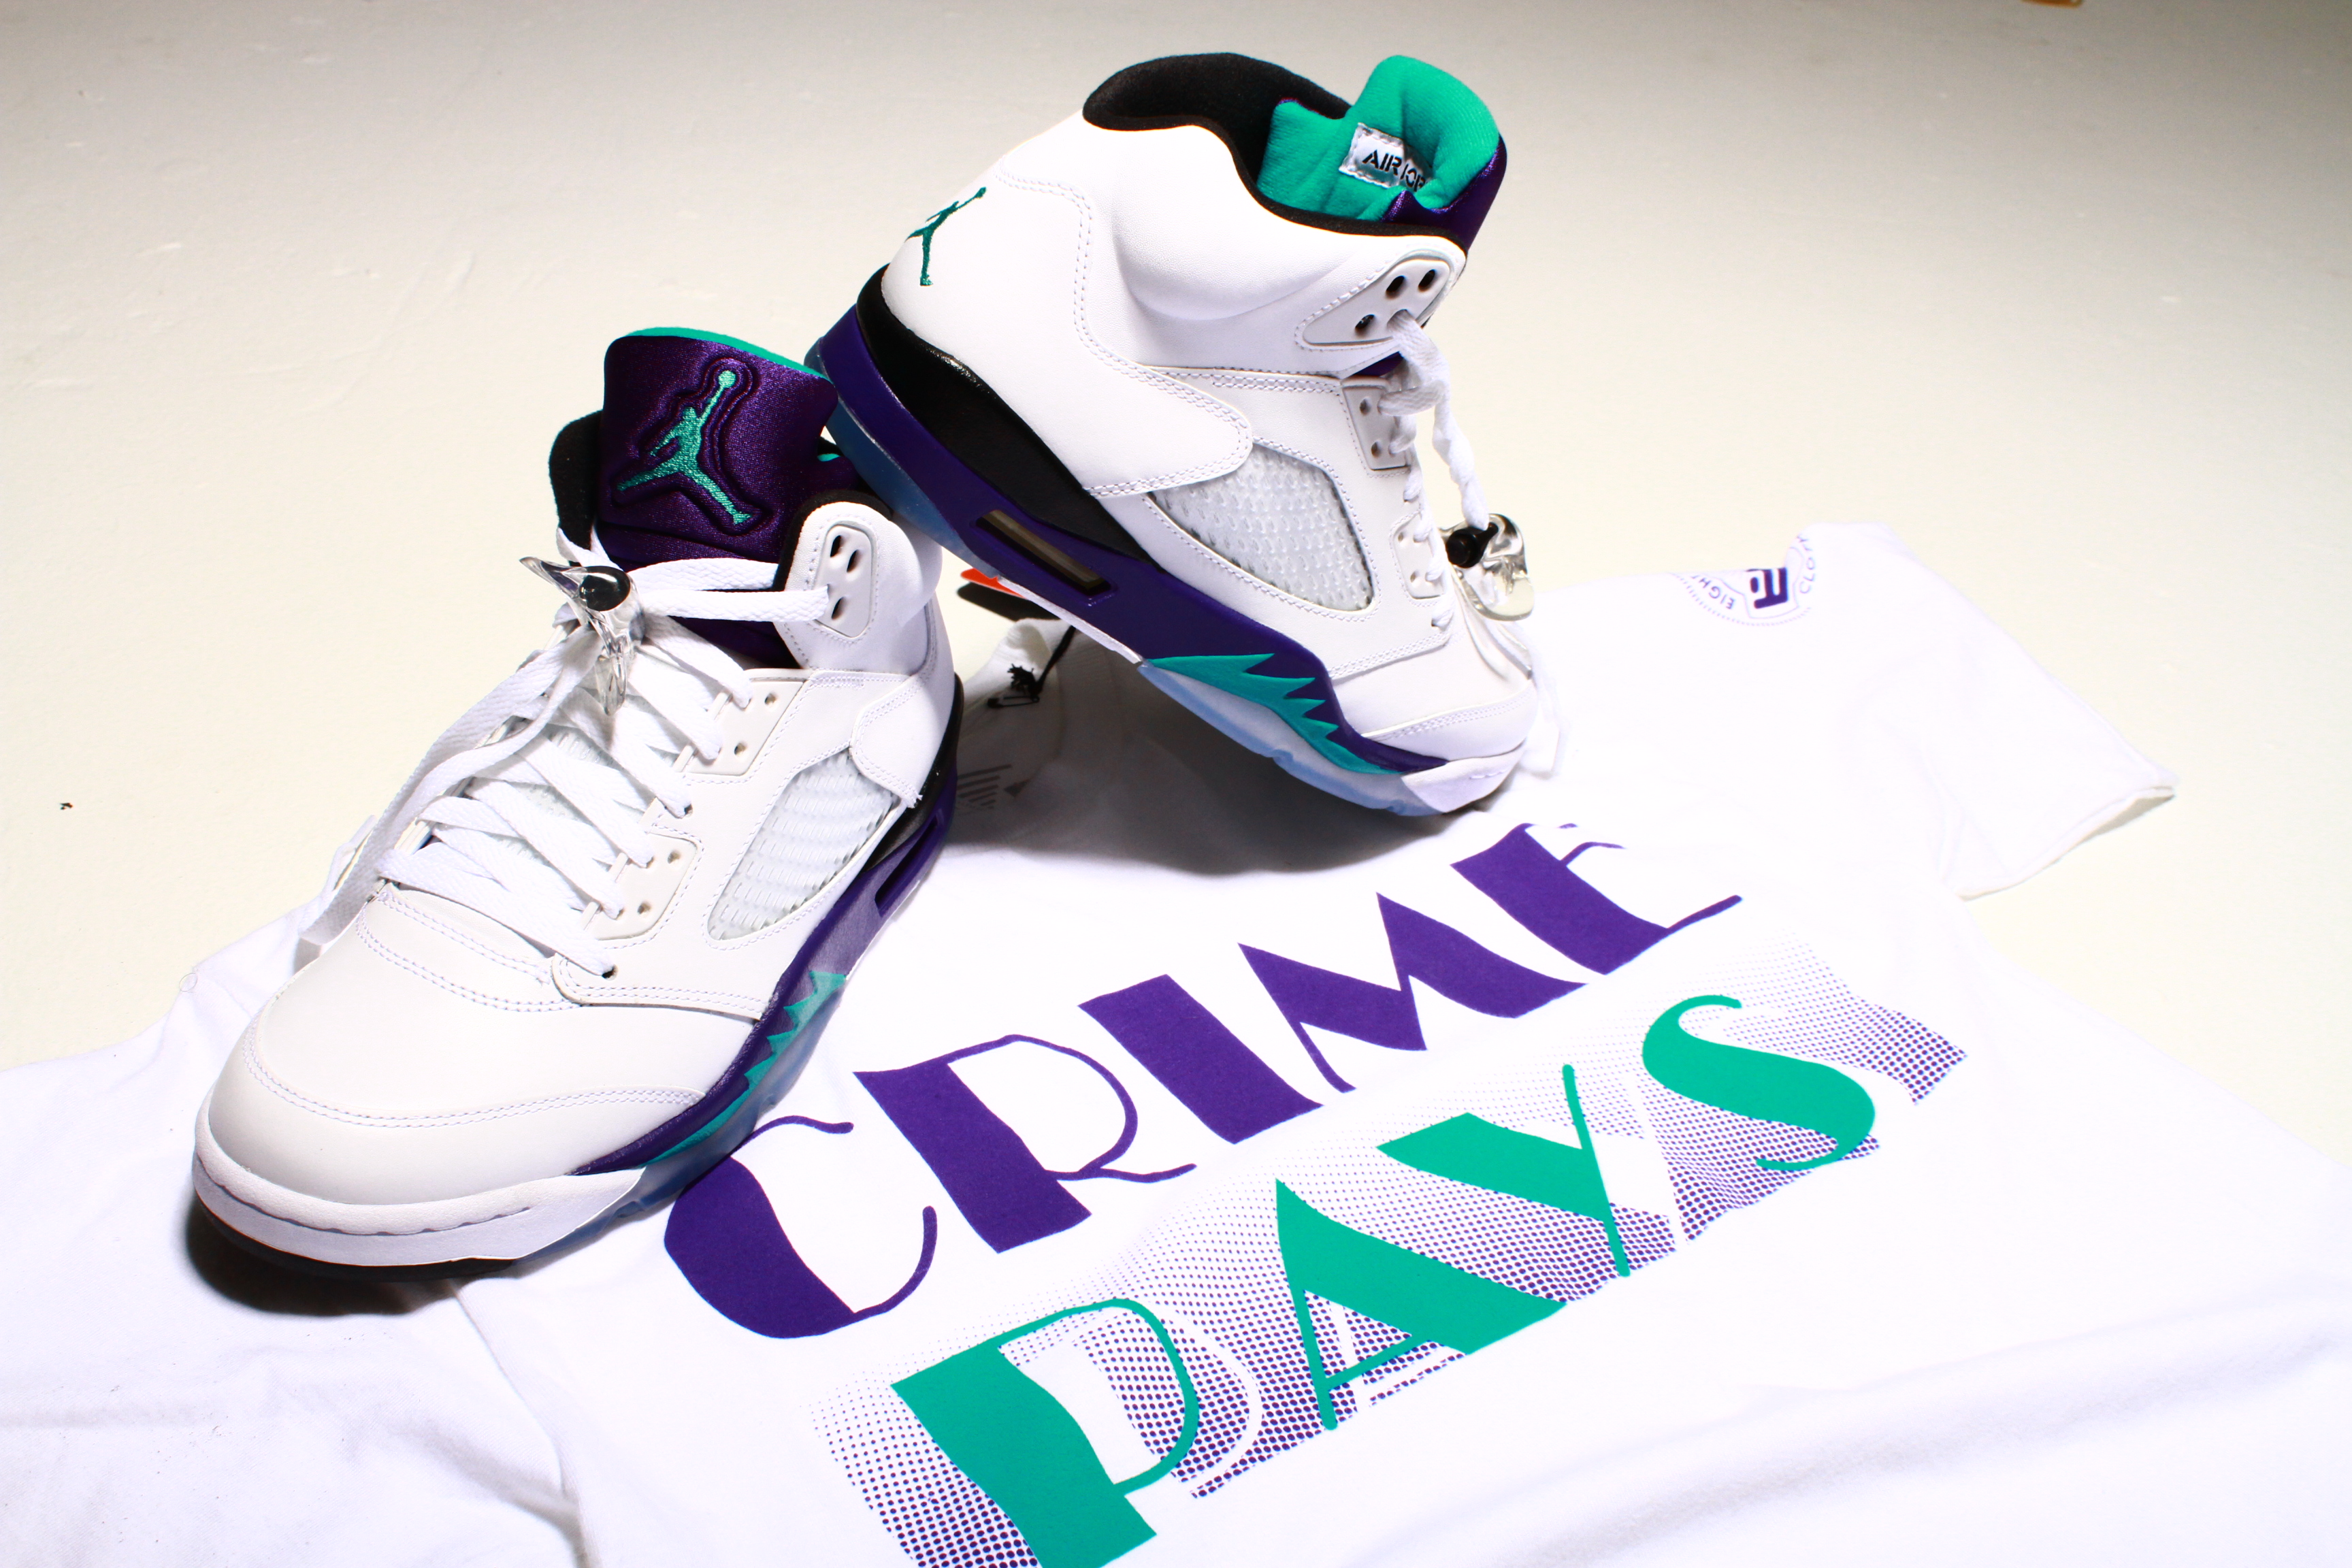 0630779b25d Shirt to match Jordan 5 Grape 2013 Release | 8&9 Clothing Co.